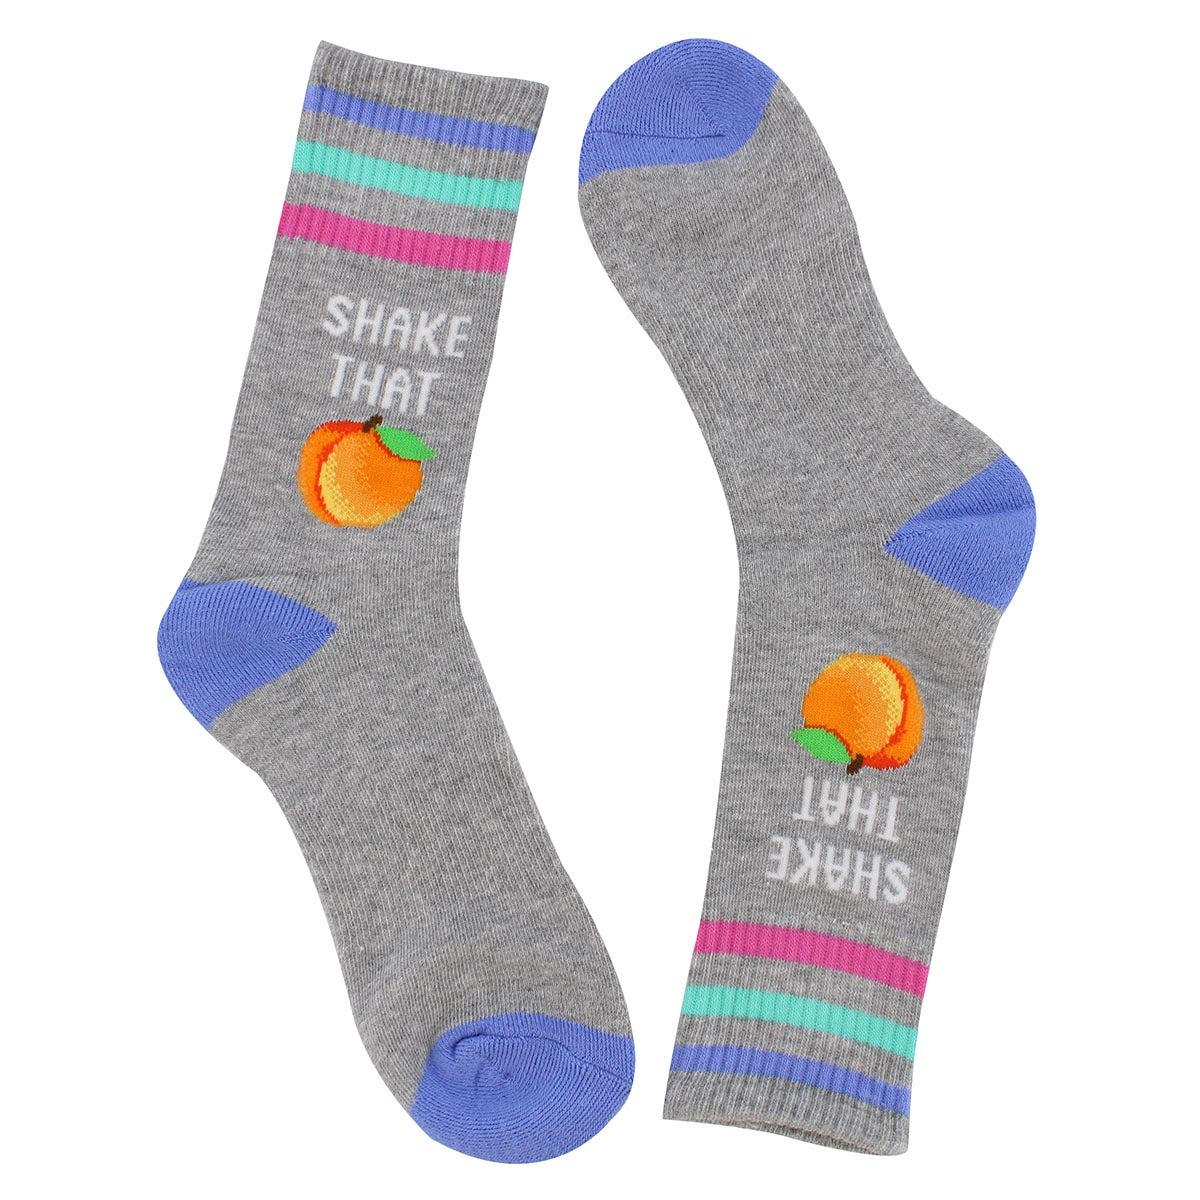 Lds Shake That Peach grey printed sock